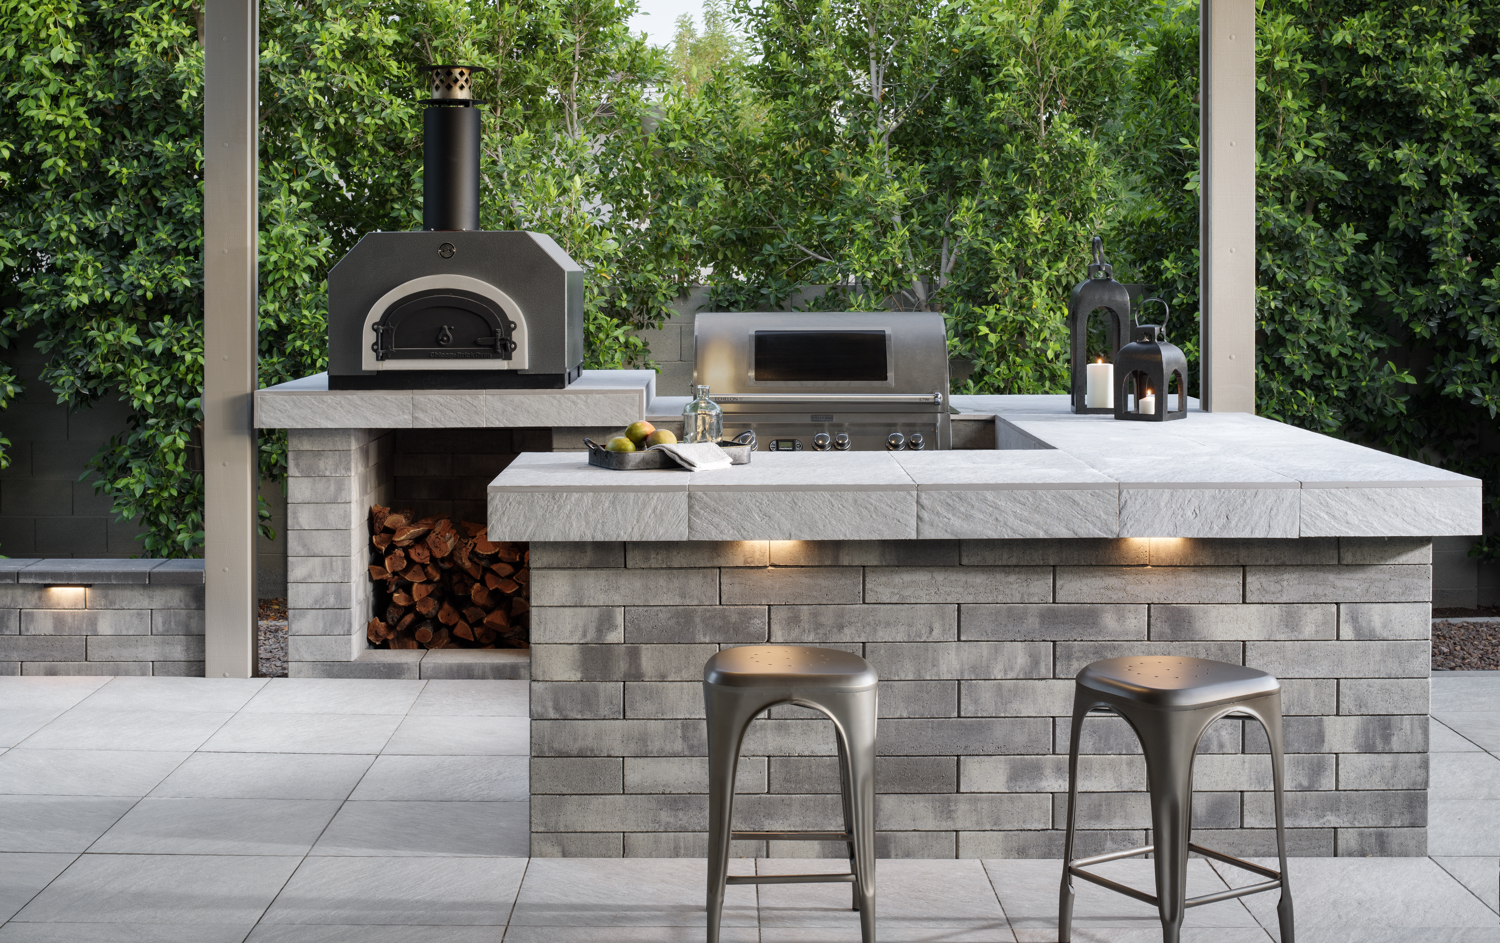 An outdoor kitchen you can purchase for a reasonable cost.